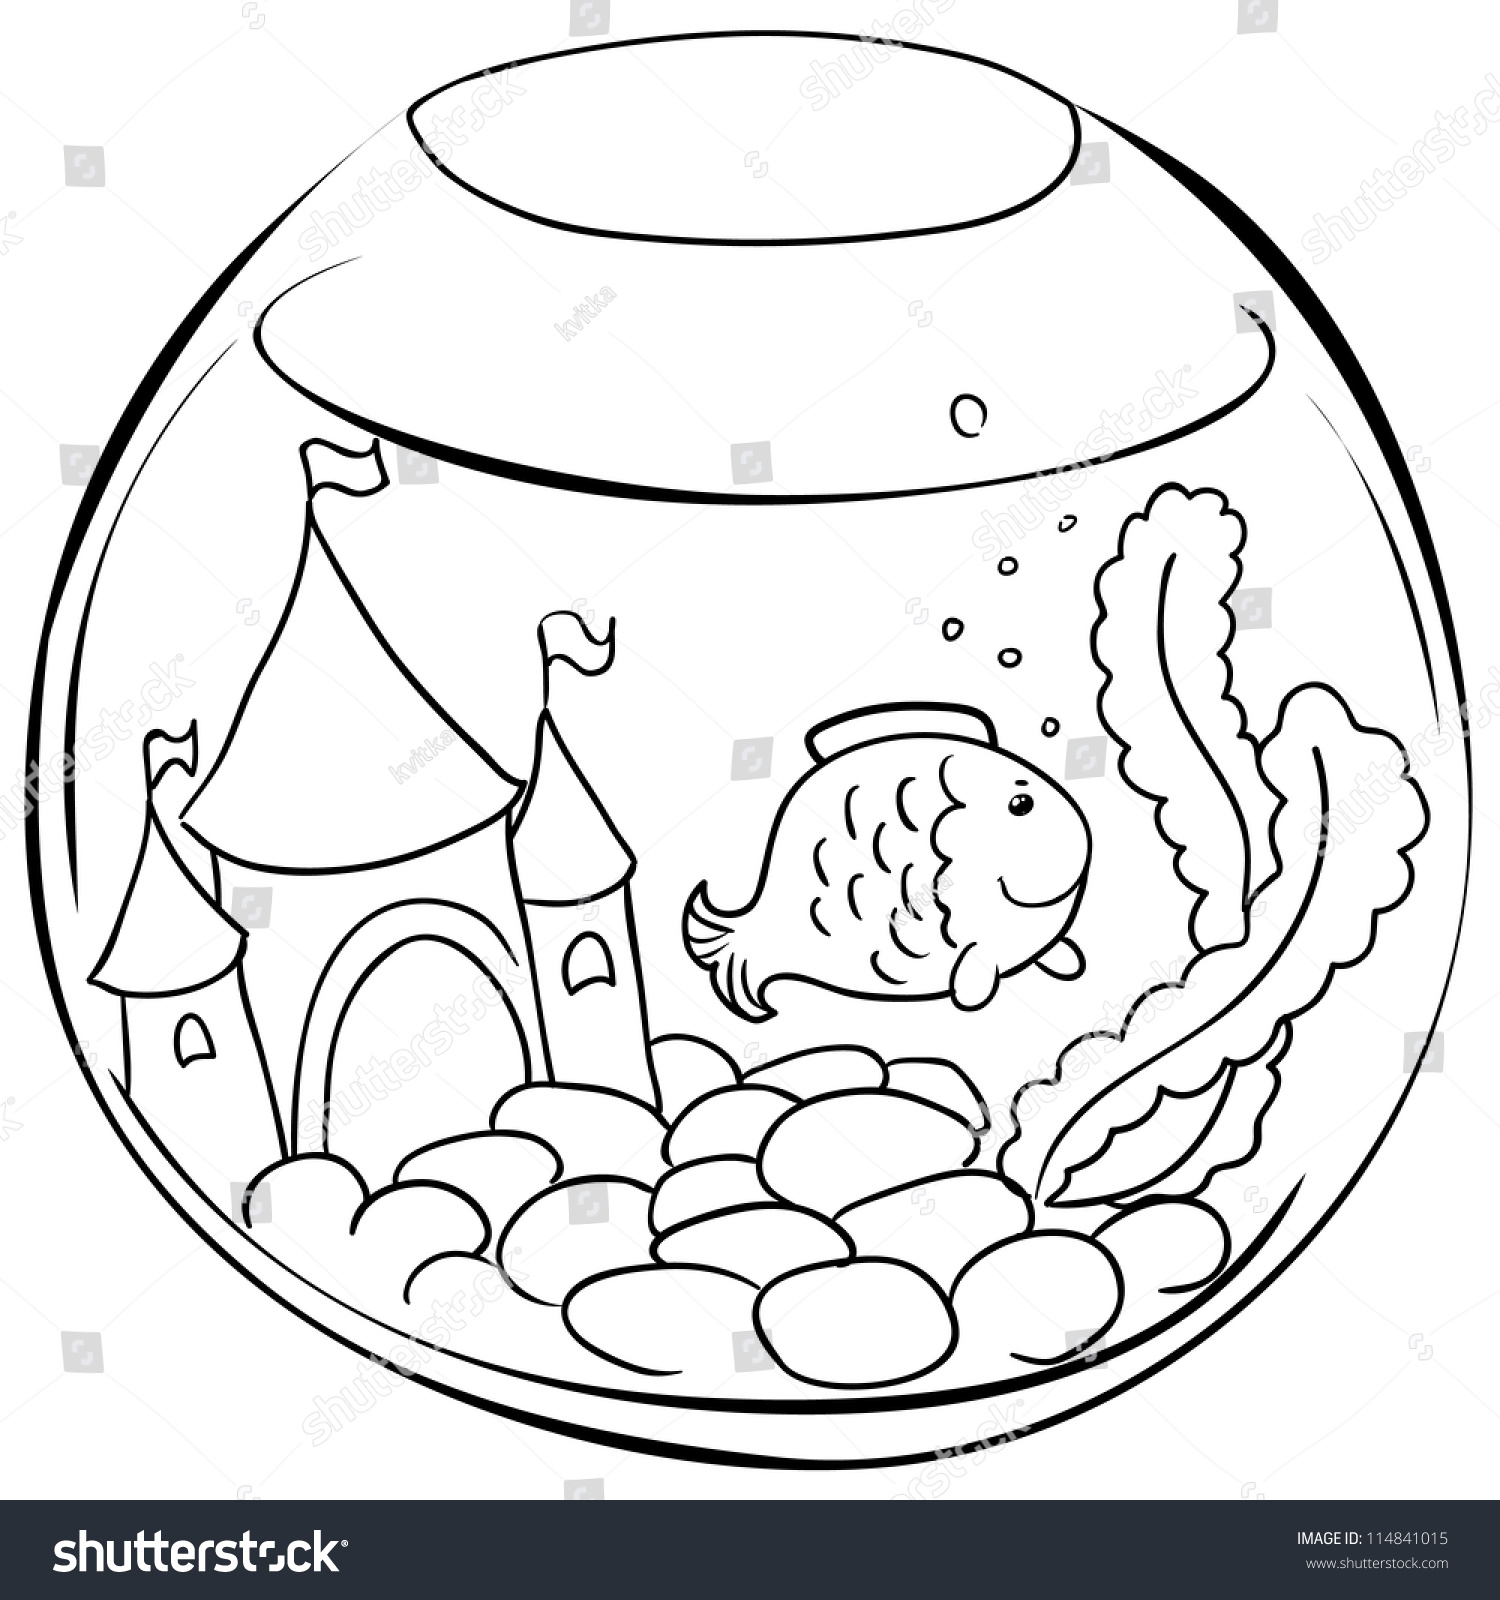 Fish tank drawing pictures - Aquarium With Little Fish Contour